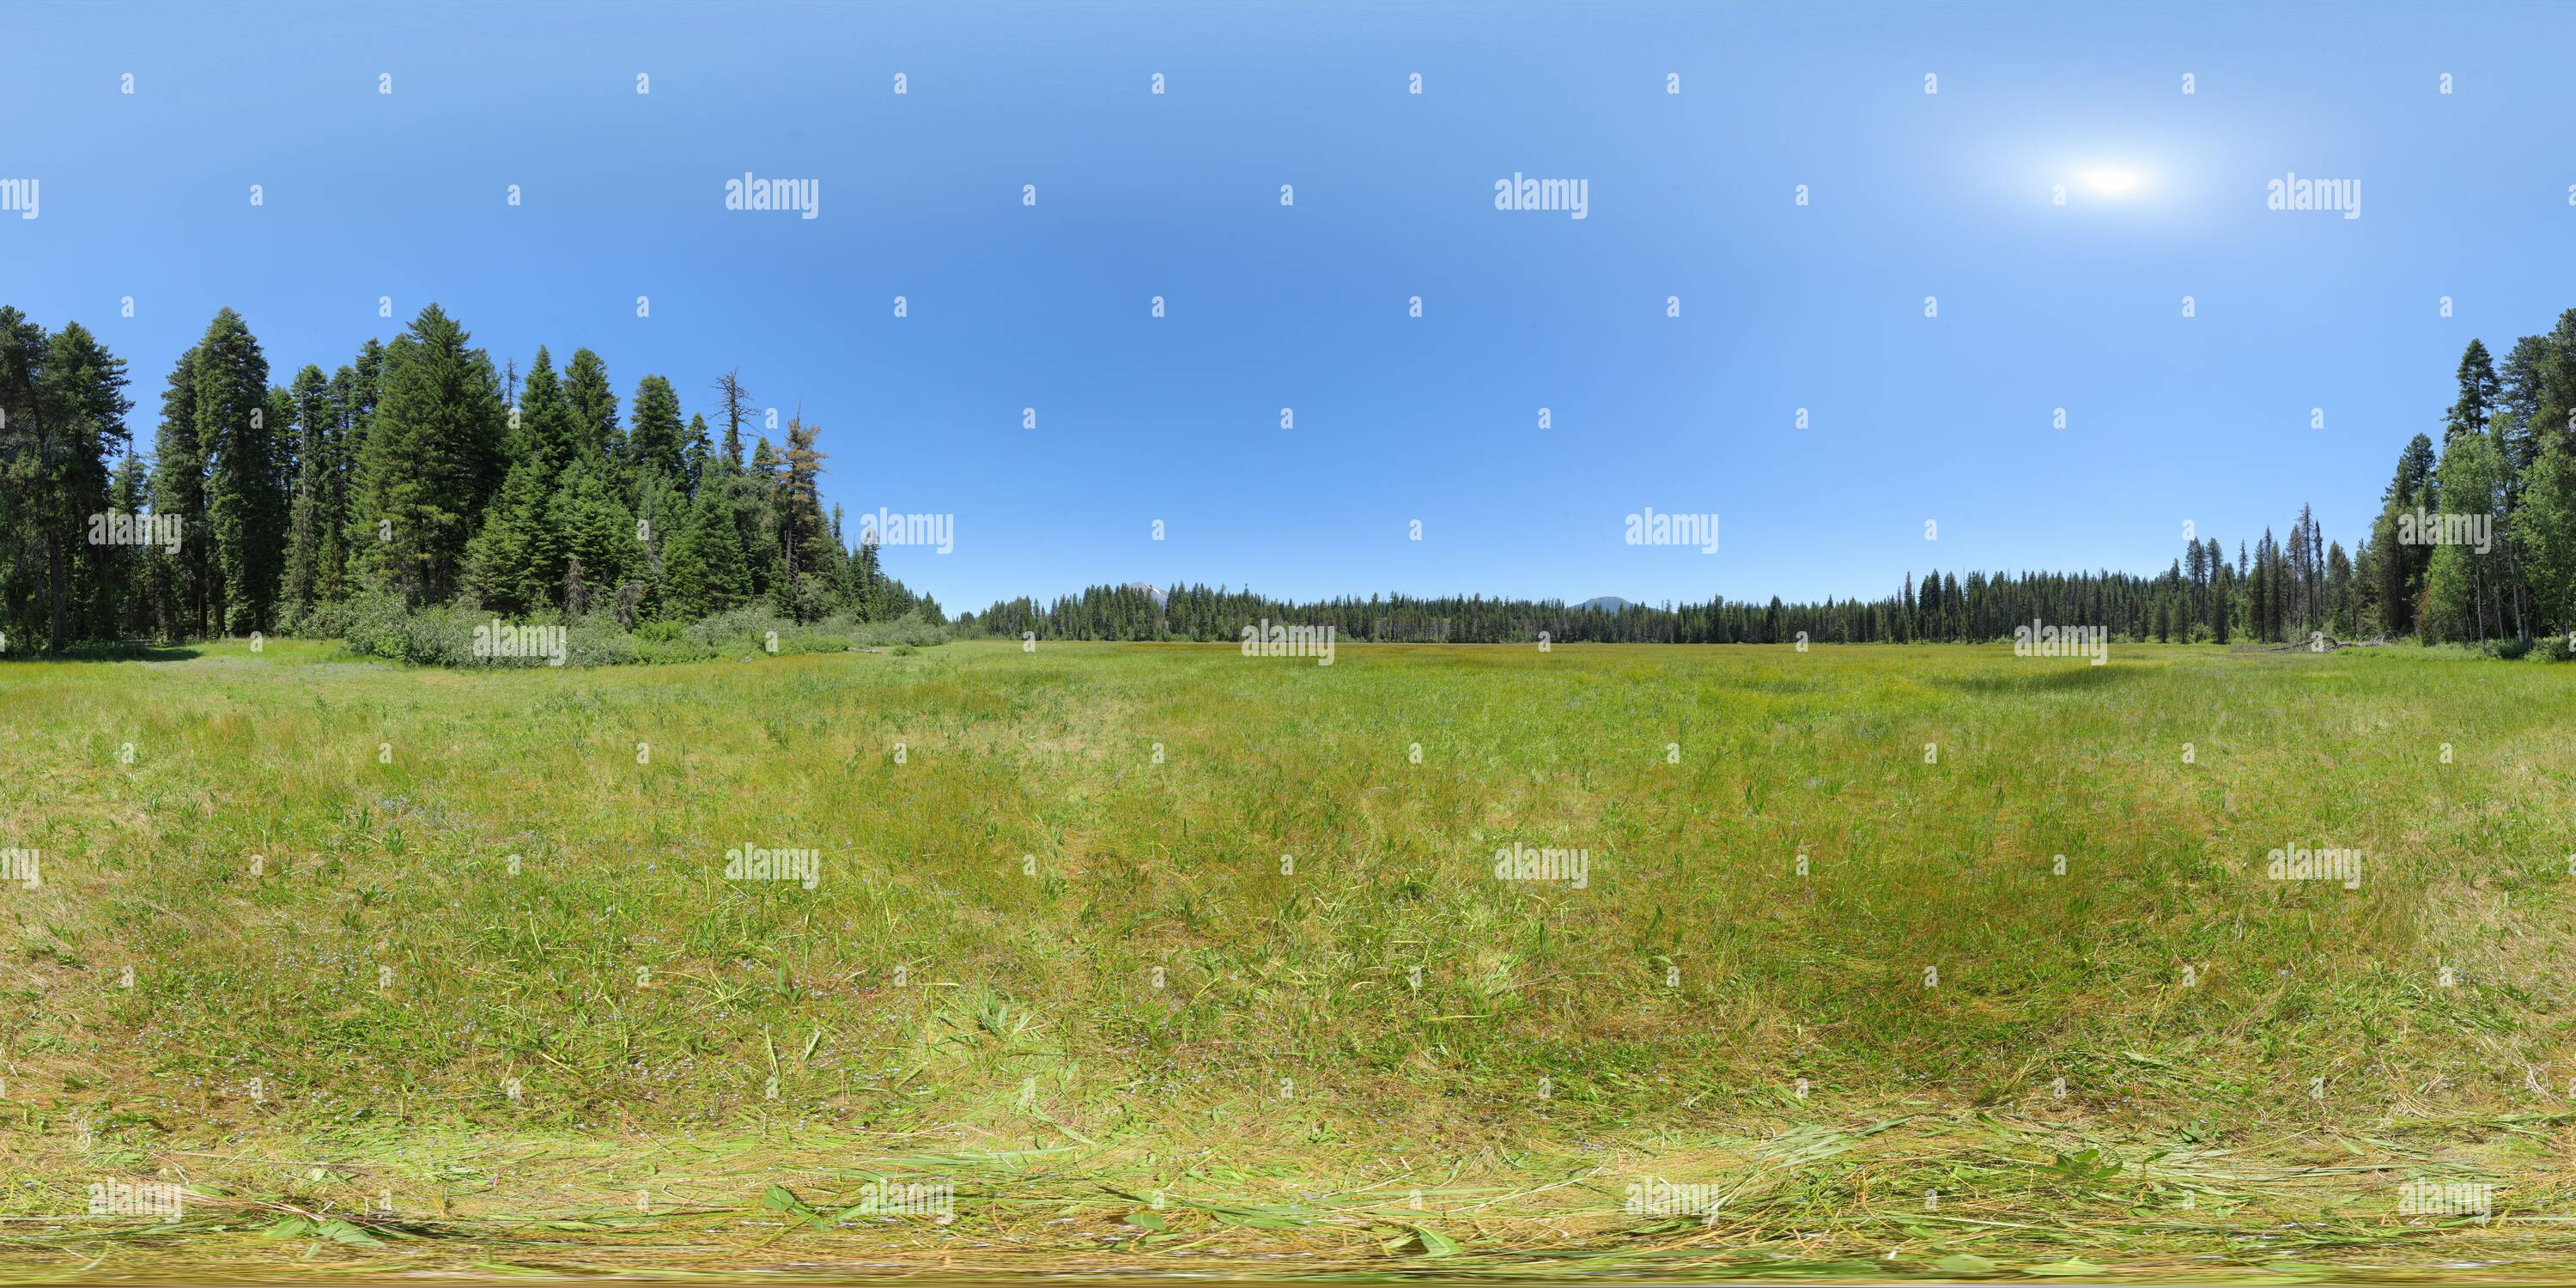 Big Elk Meadow - Stock Image